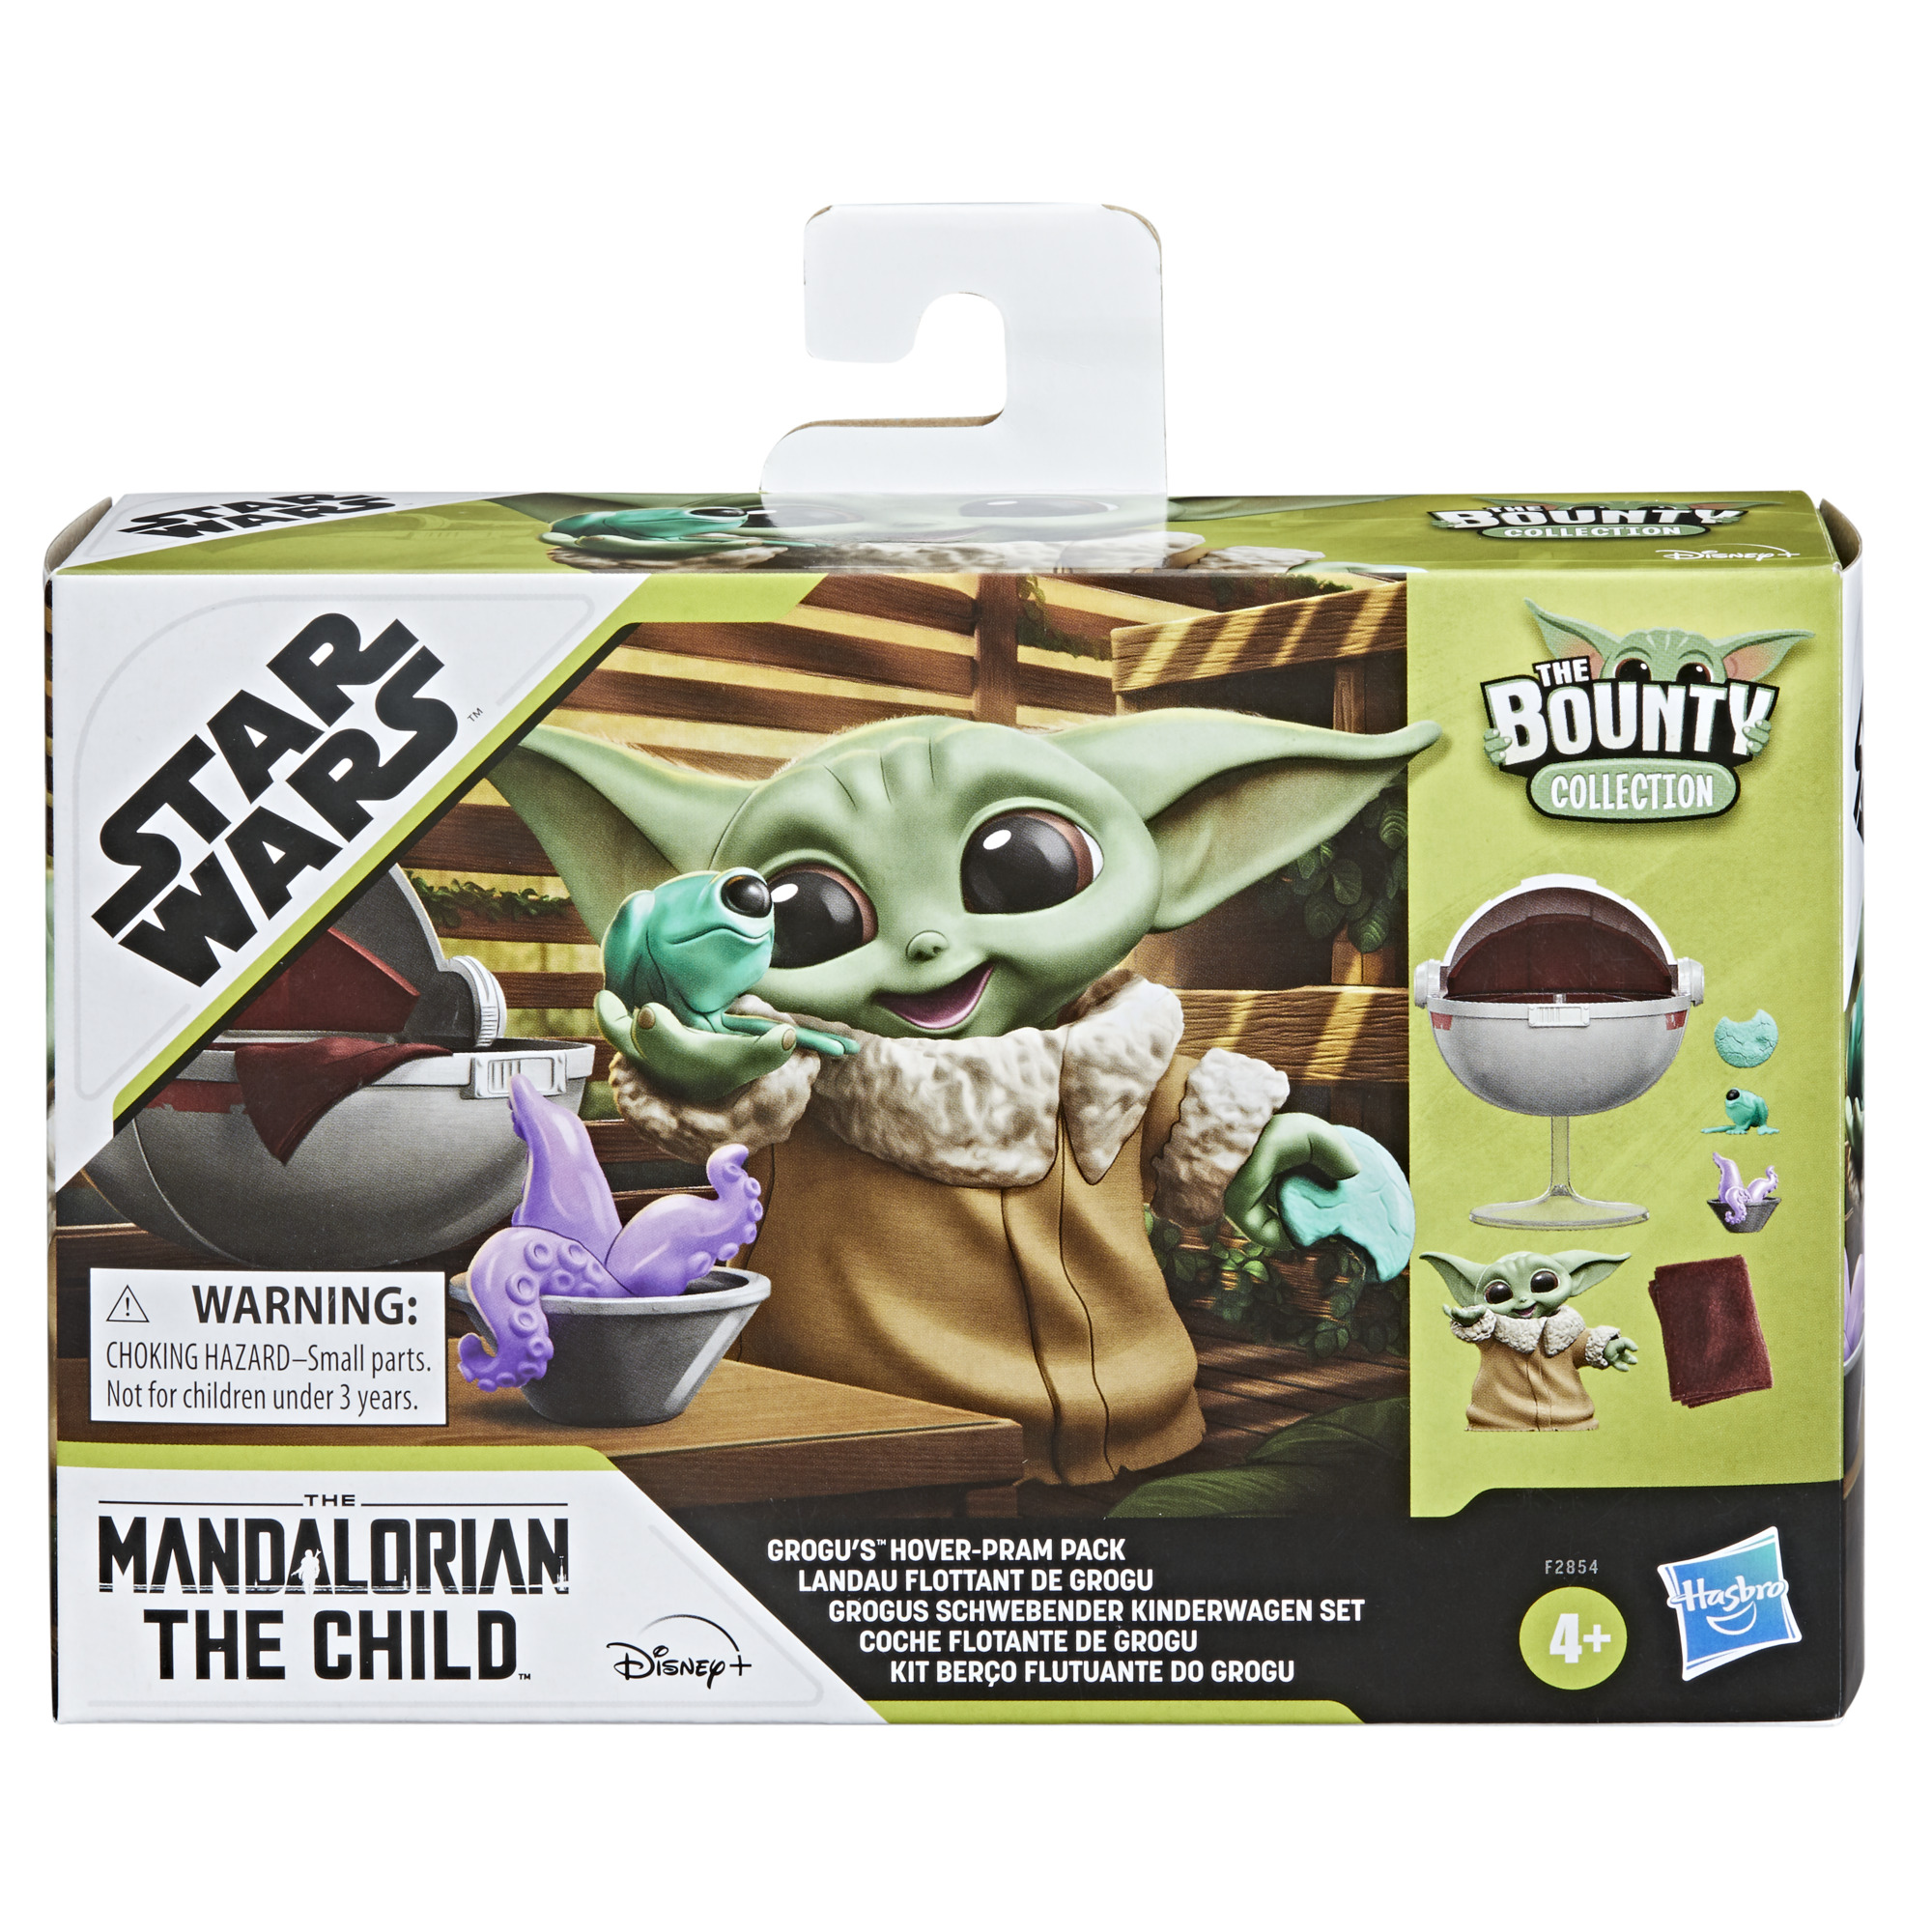 TM Grogu's Hover-Pram The Bounty Collection Figure Pack 1